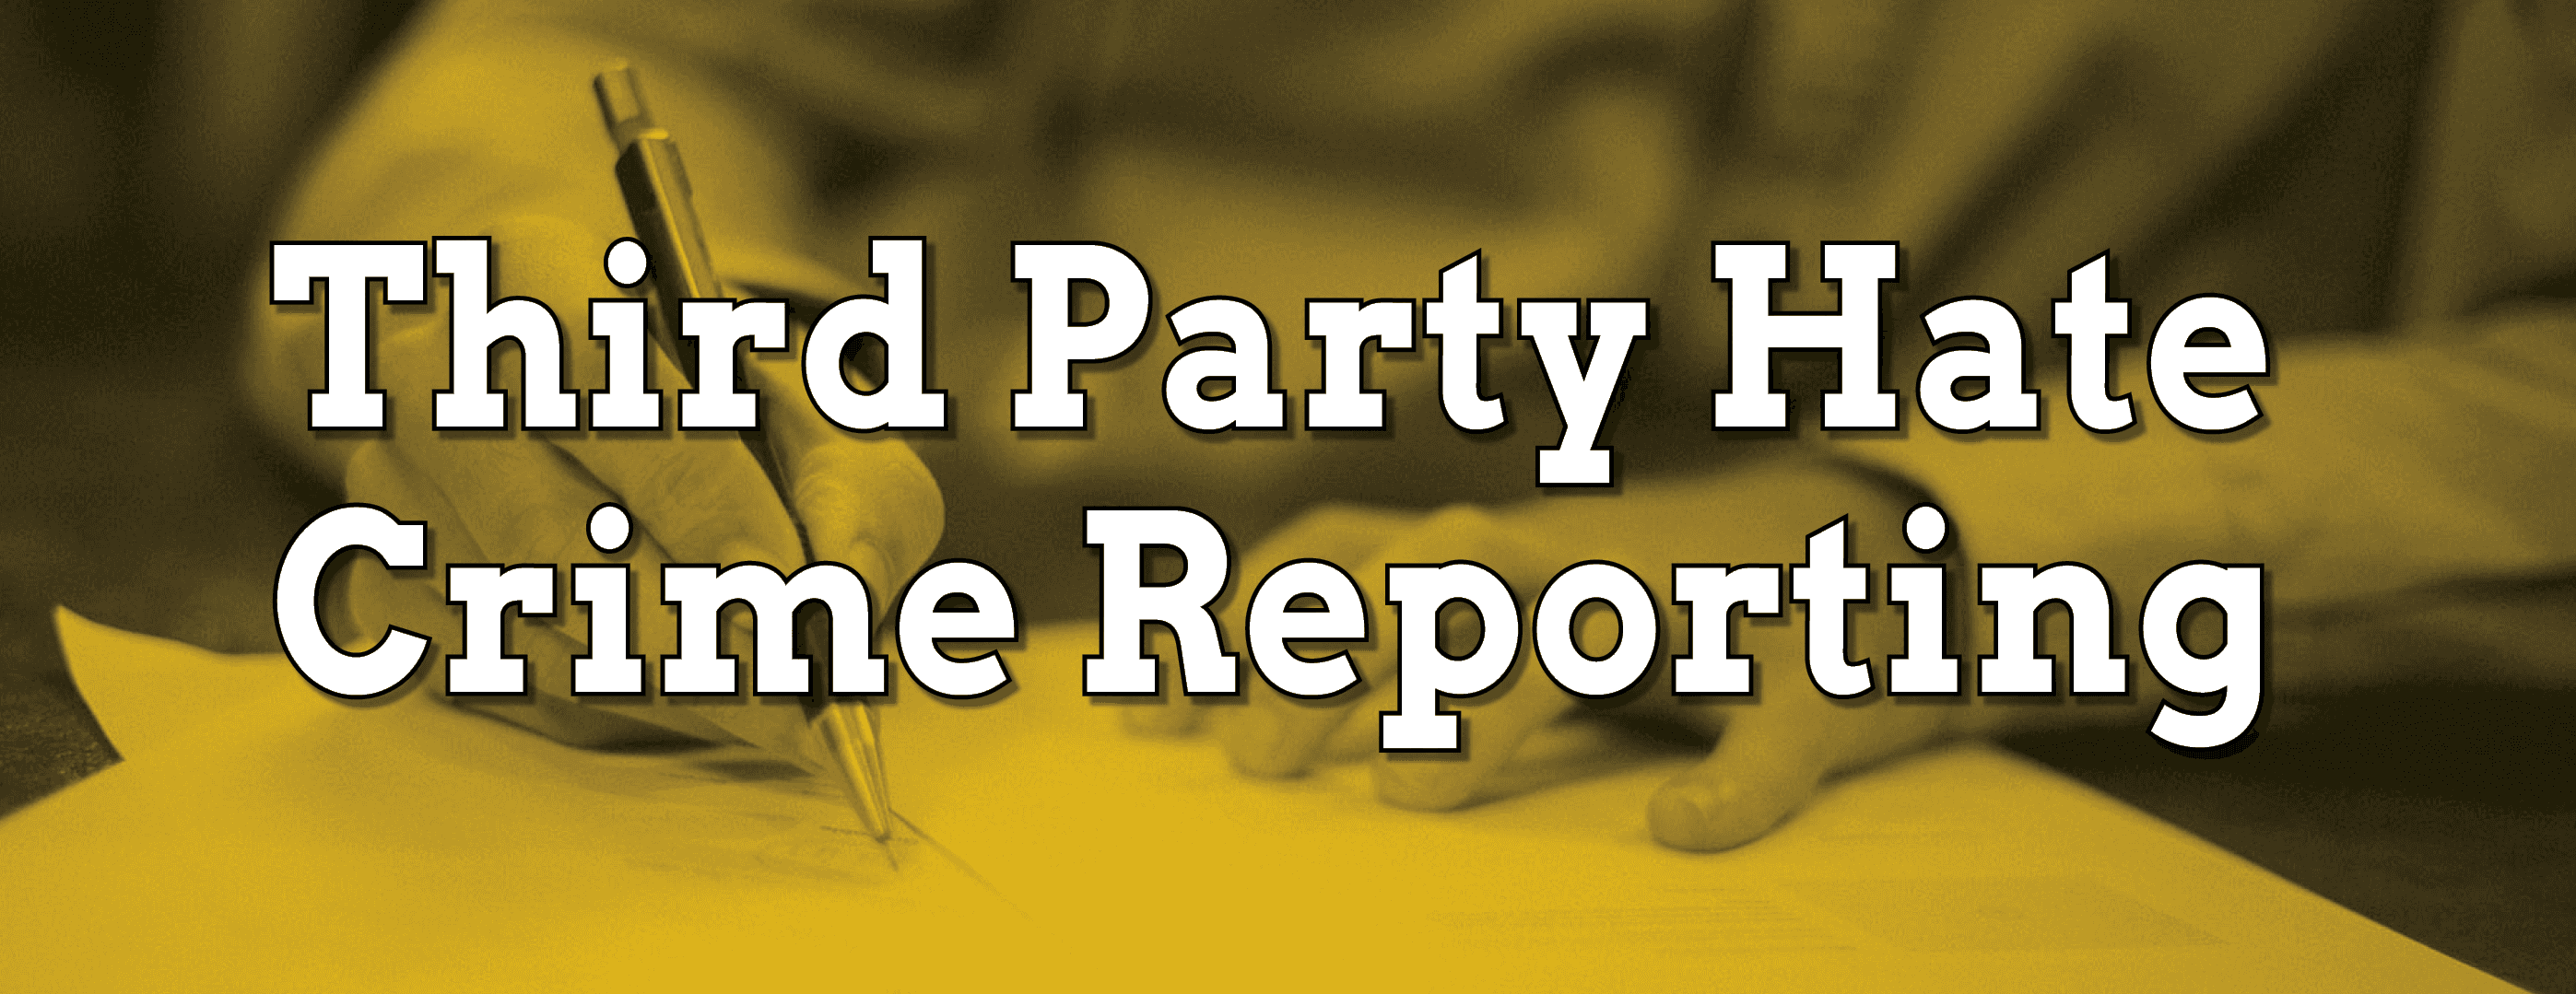 Third Party Hate Crime Reporting